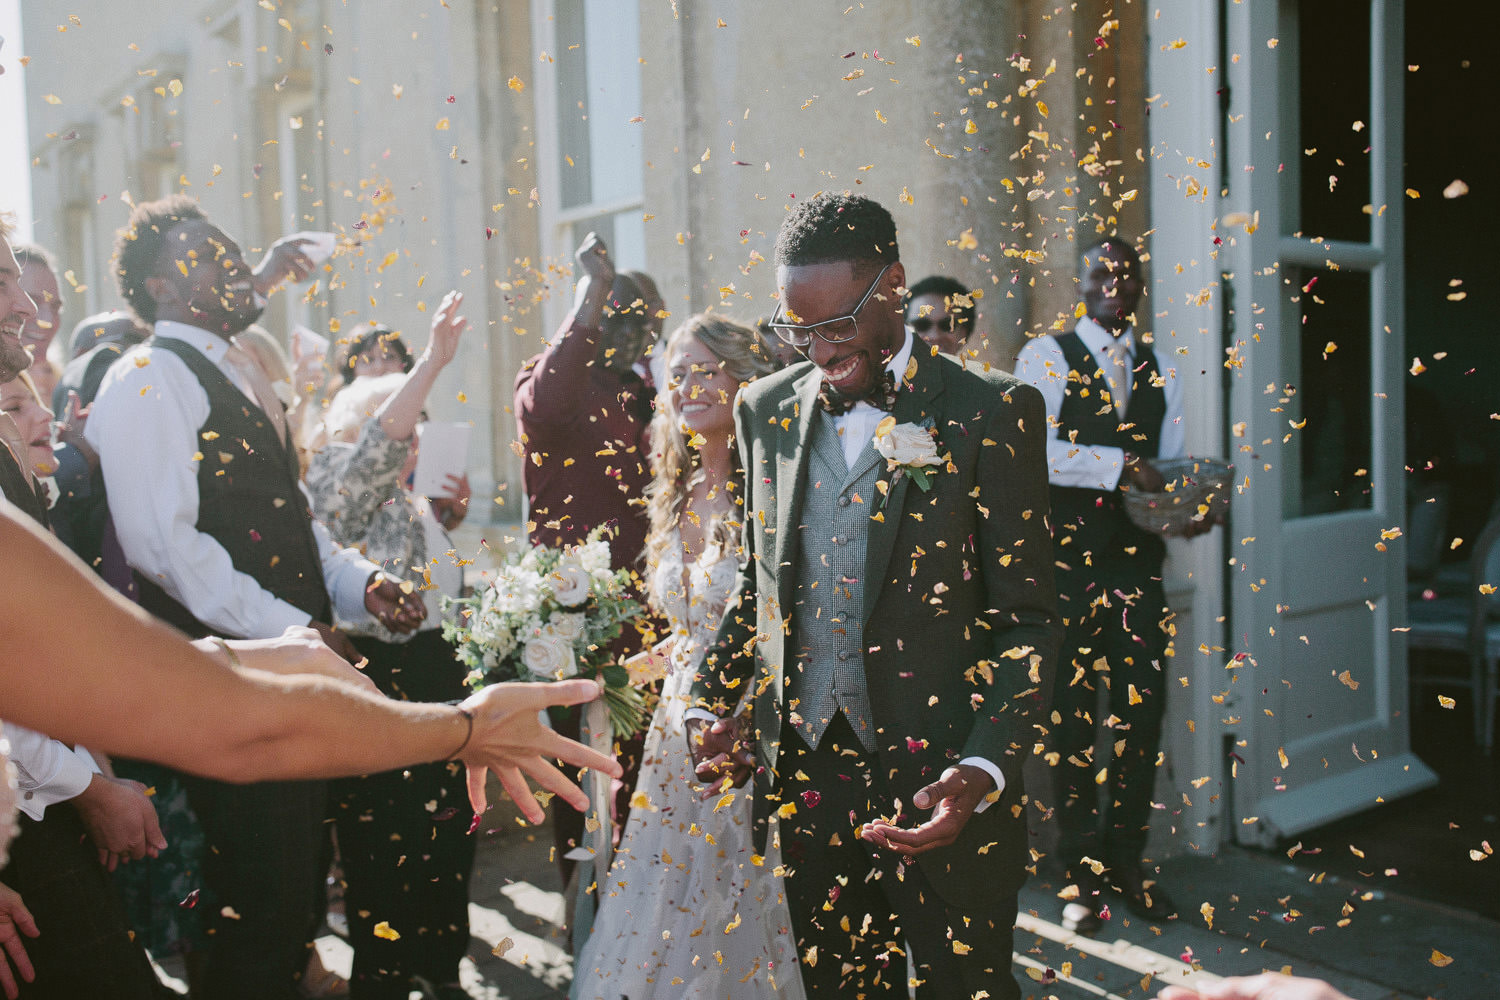 bride and groom walking out surrounded by guests throwing orange confetti